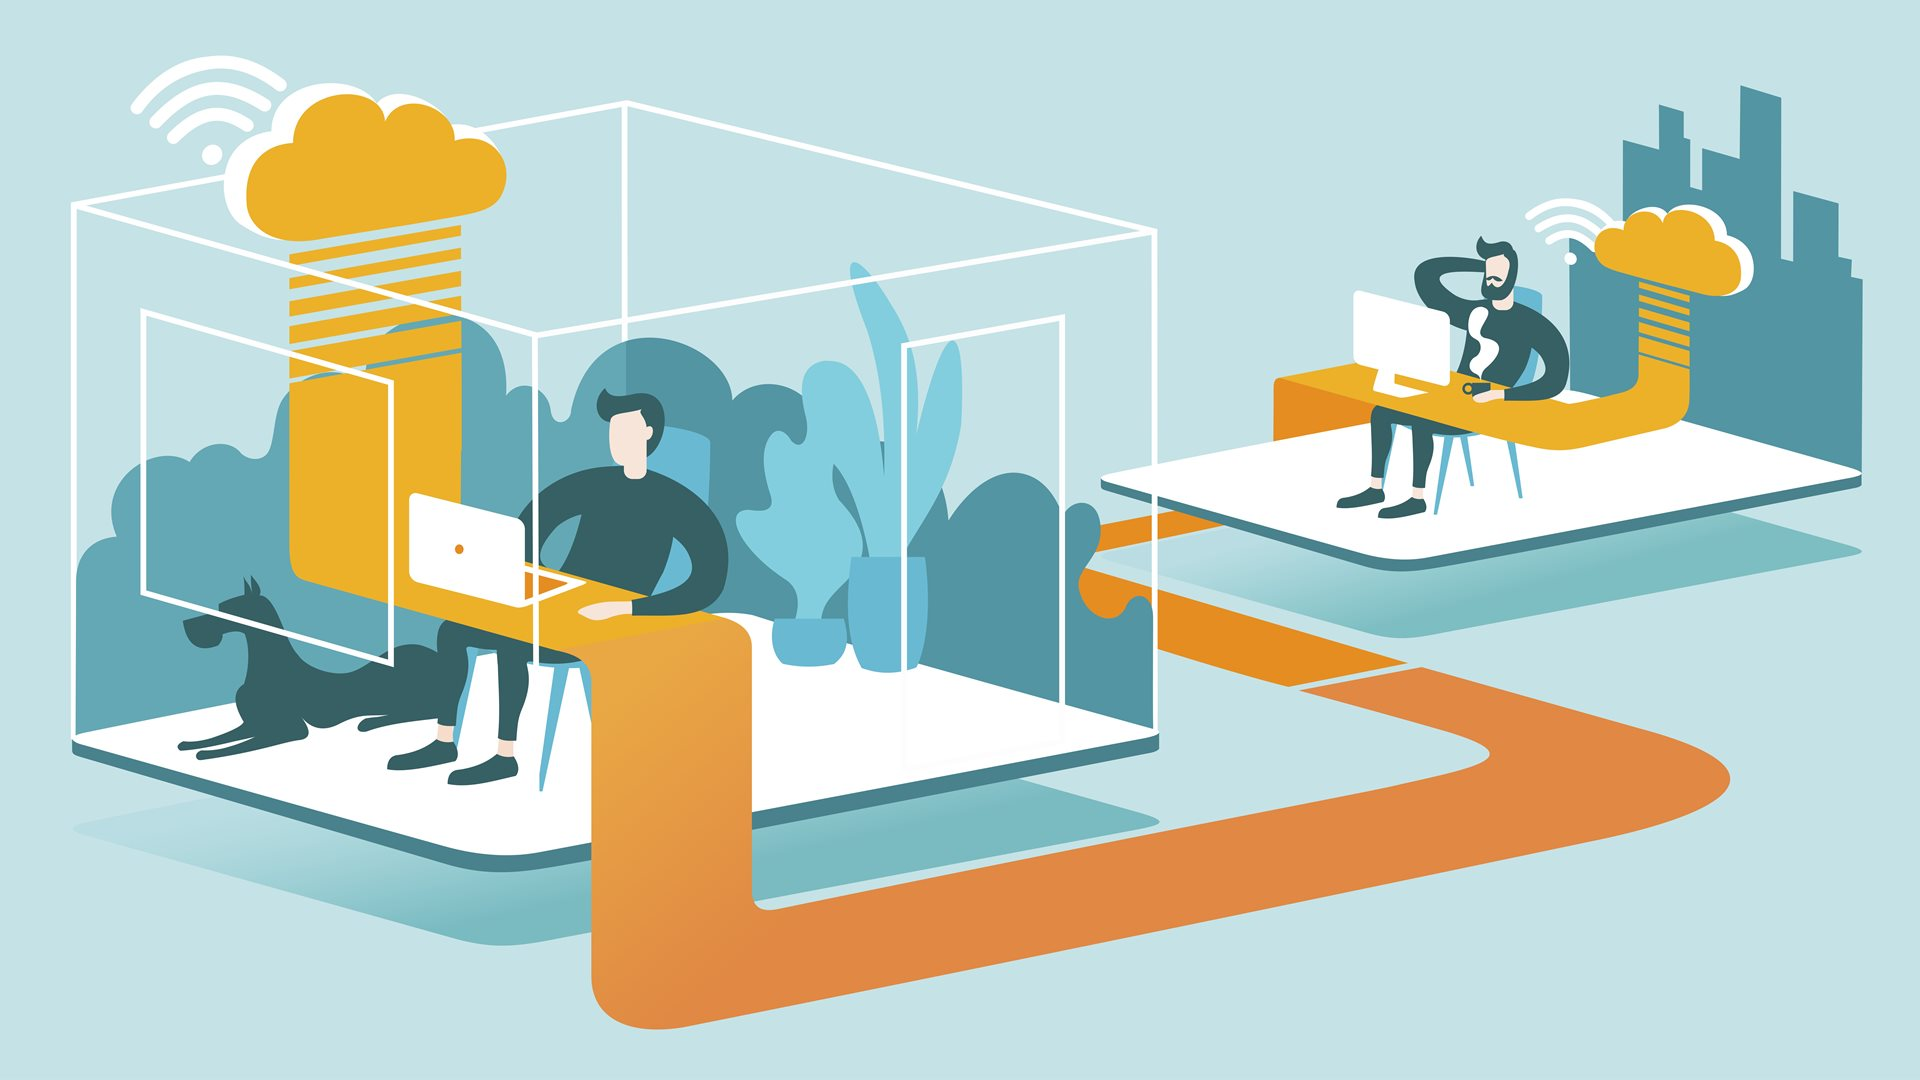 Illustration with one man working remotely and another working in a work setting, with a yellow line indicating the ability to stay connected while working remotely.